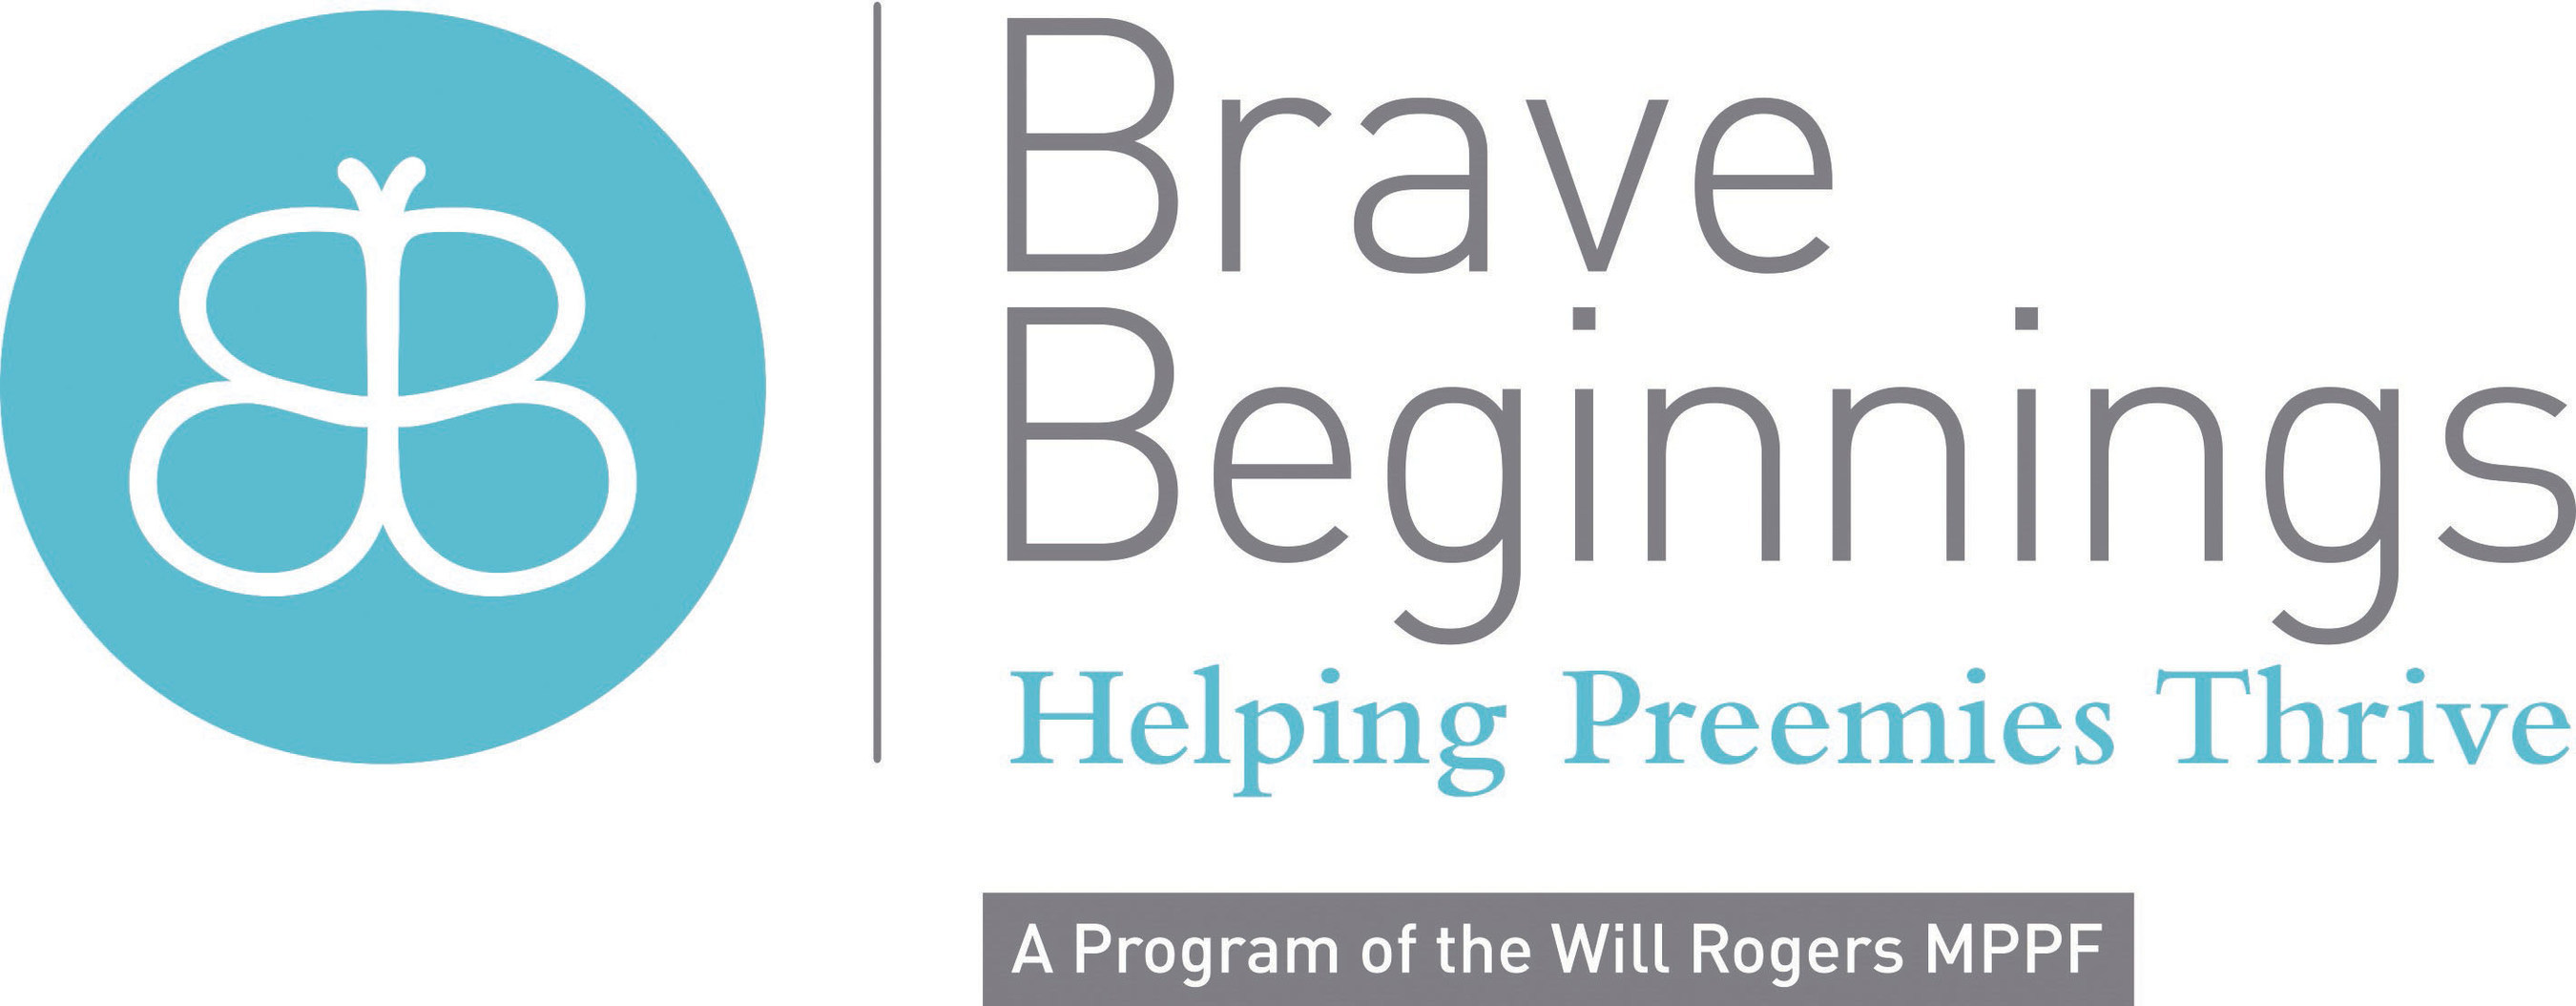 Zoe Saldana Named 2015 Theatrical Fundraising Spokesperson For Brave Beginnings